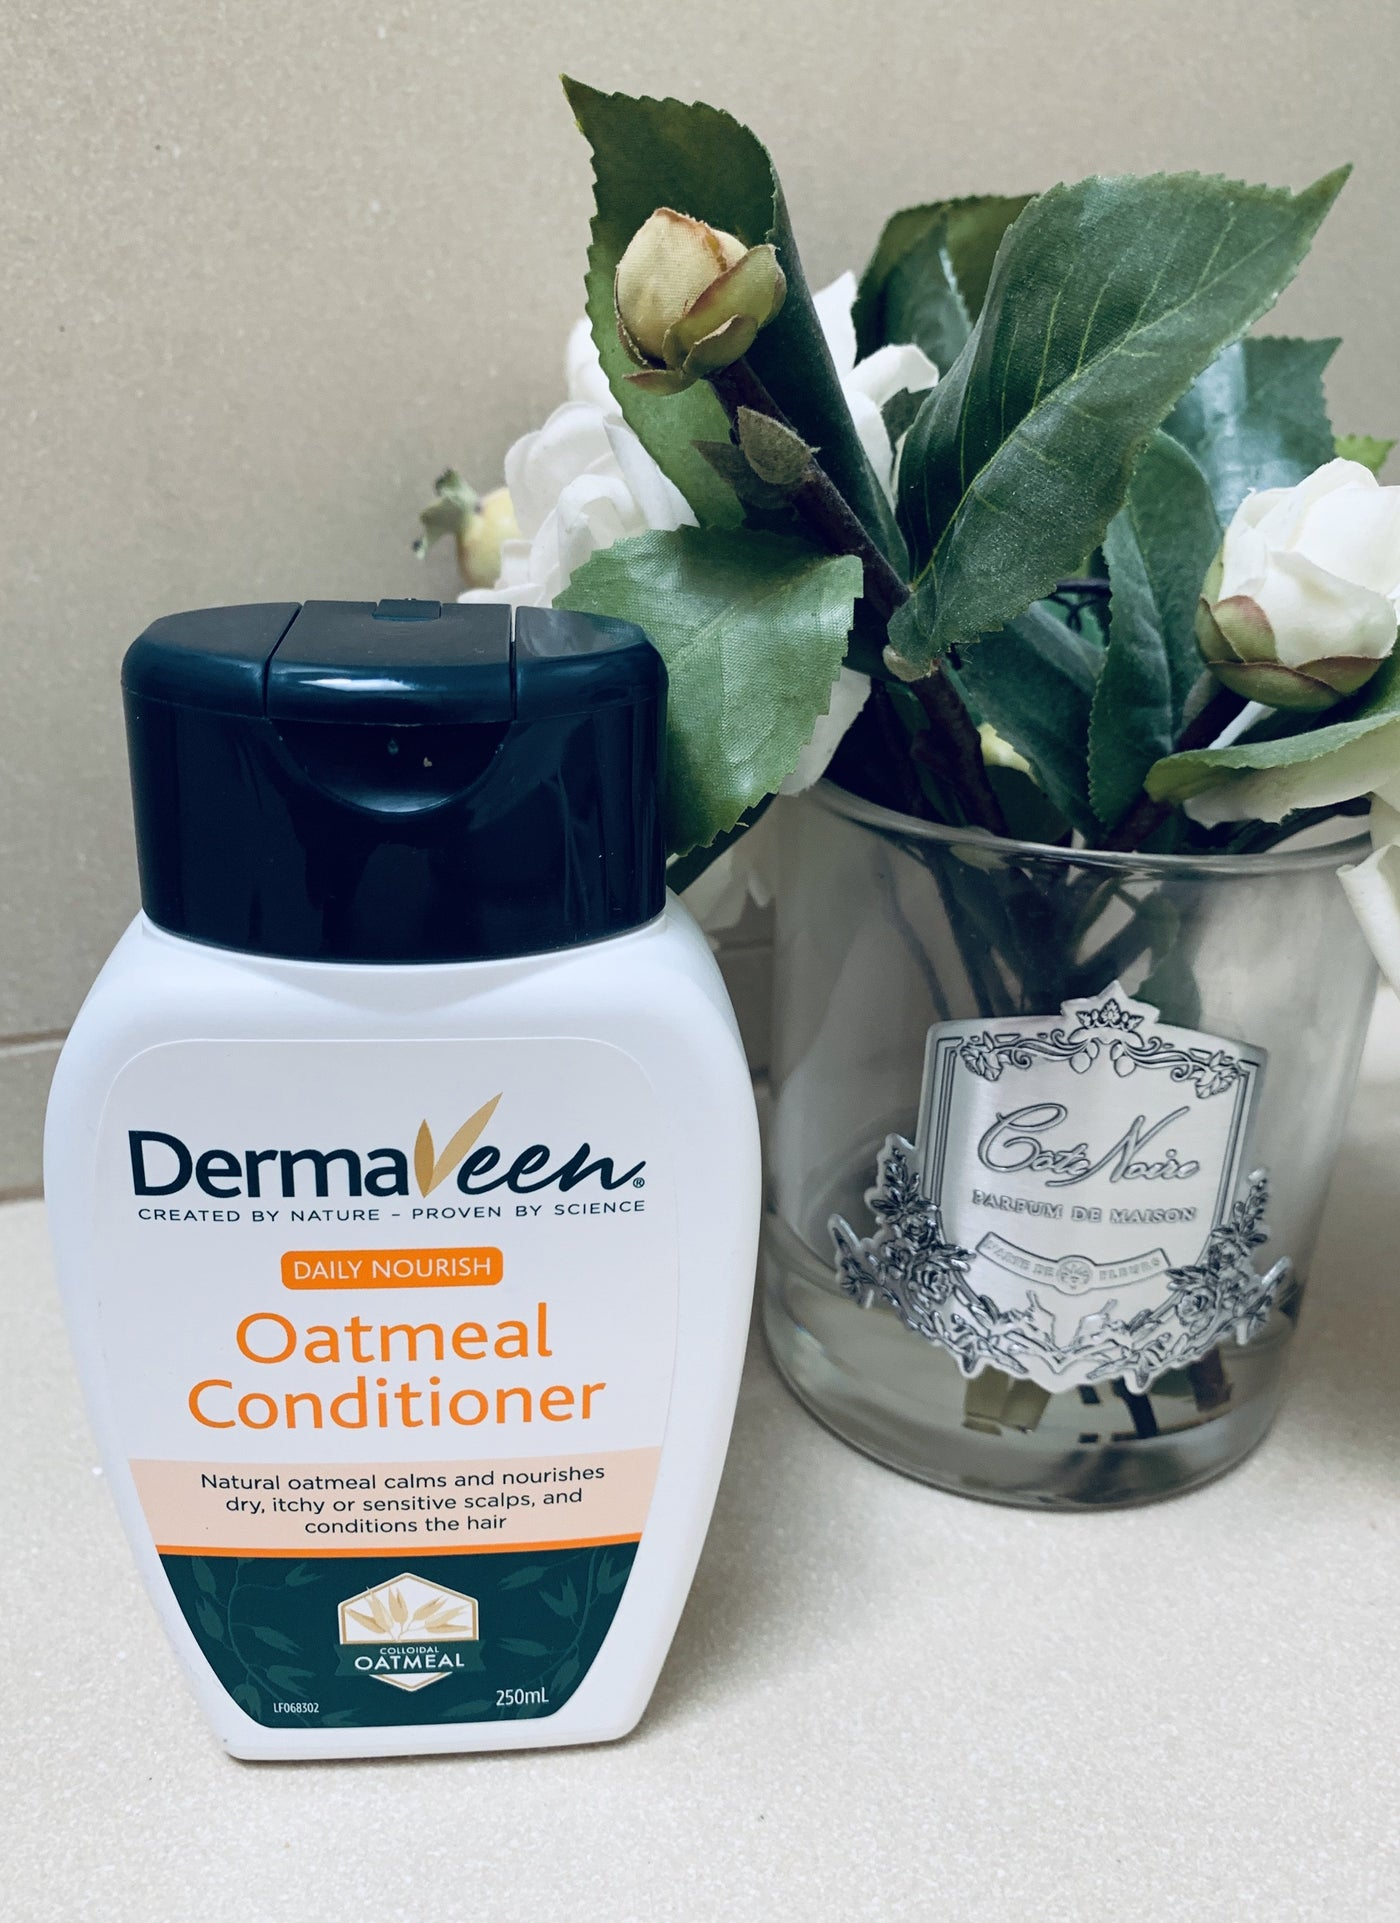 DermaVeen® Daily Nourish Oatmeal Conditioner